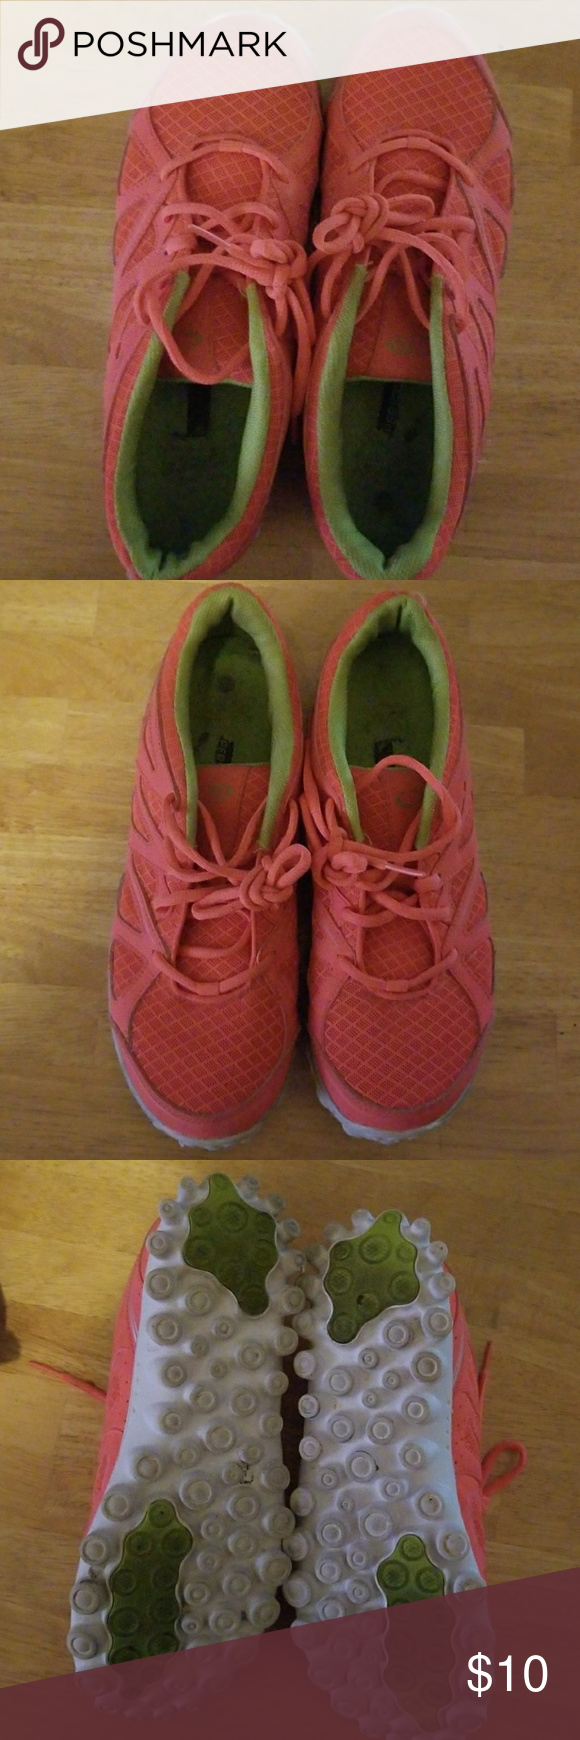 Coral colored tennis shoes   Tennis